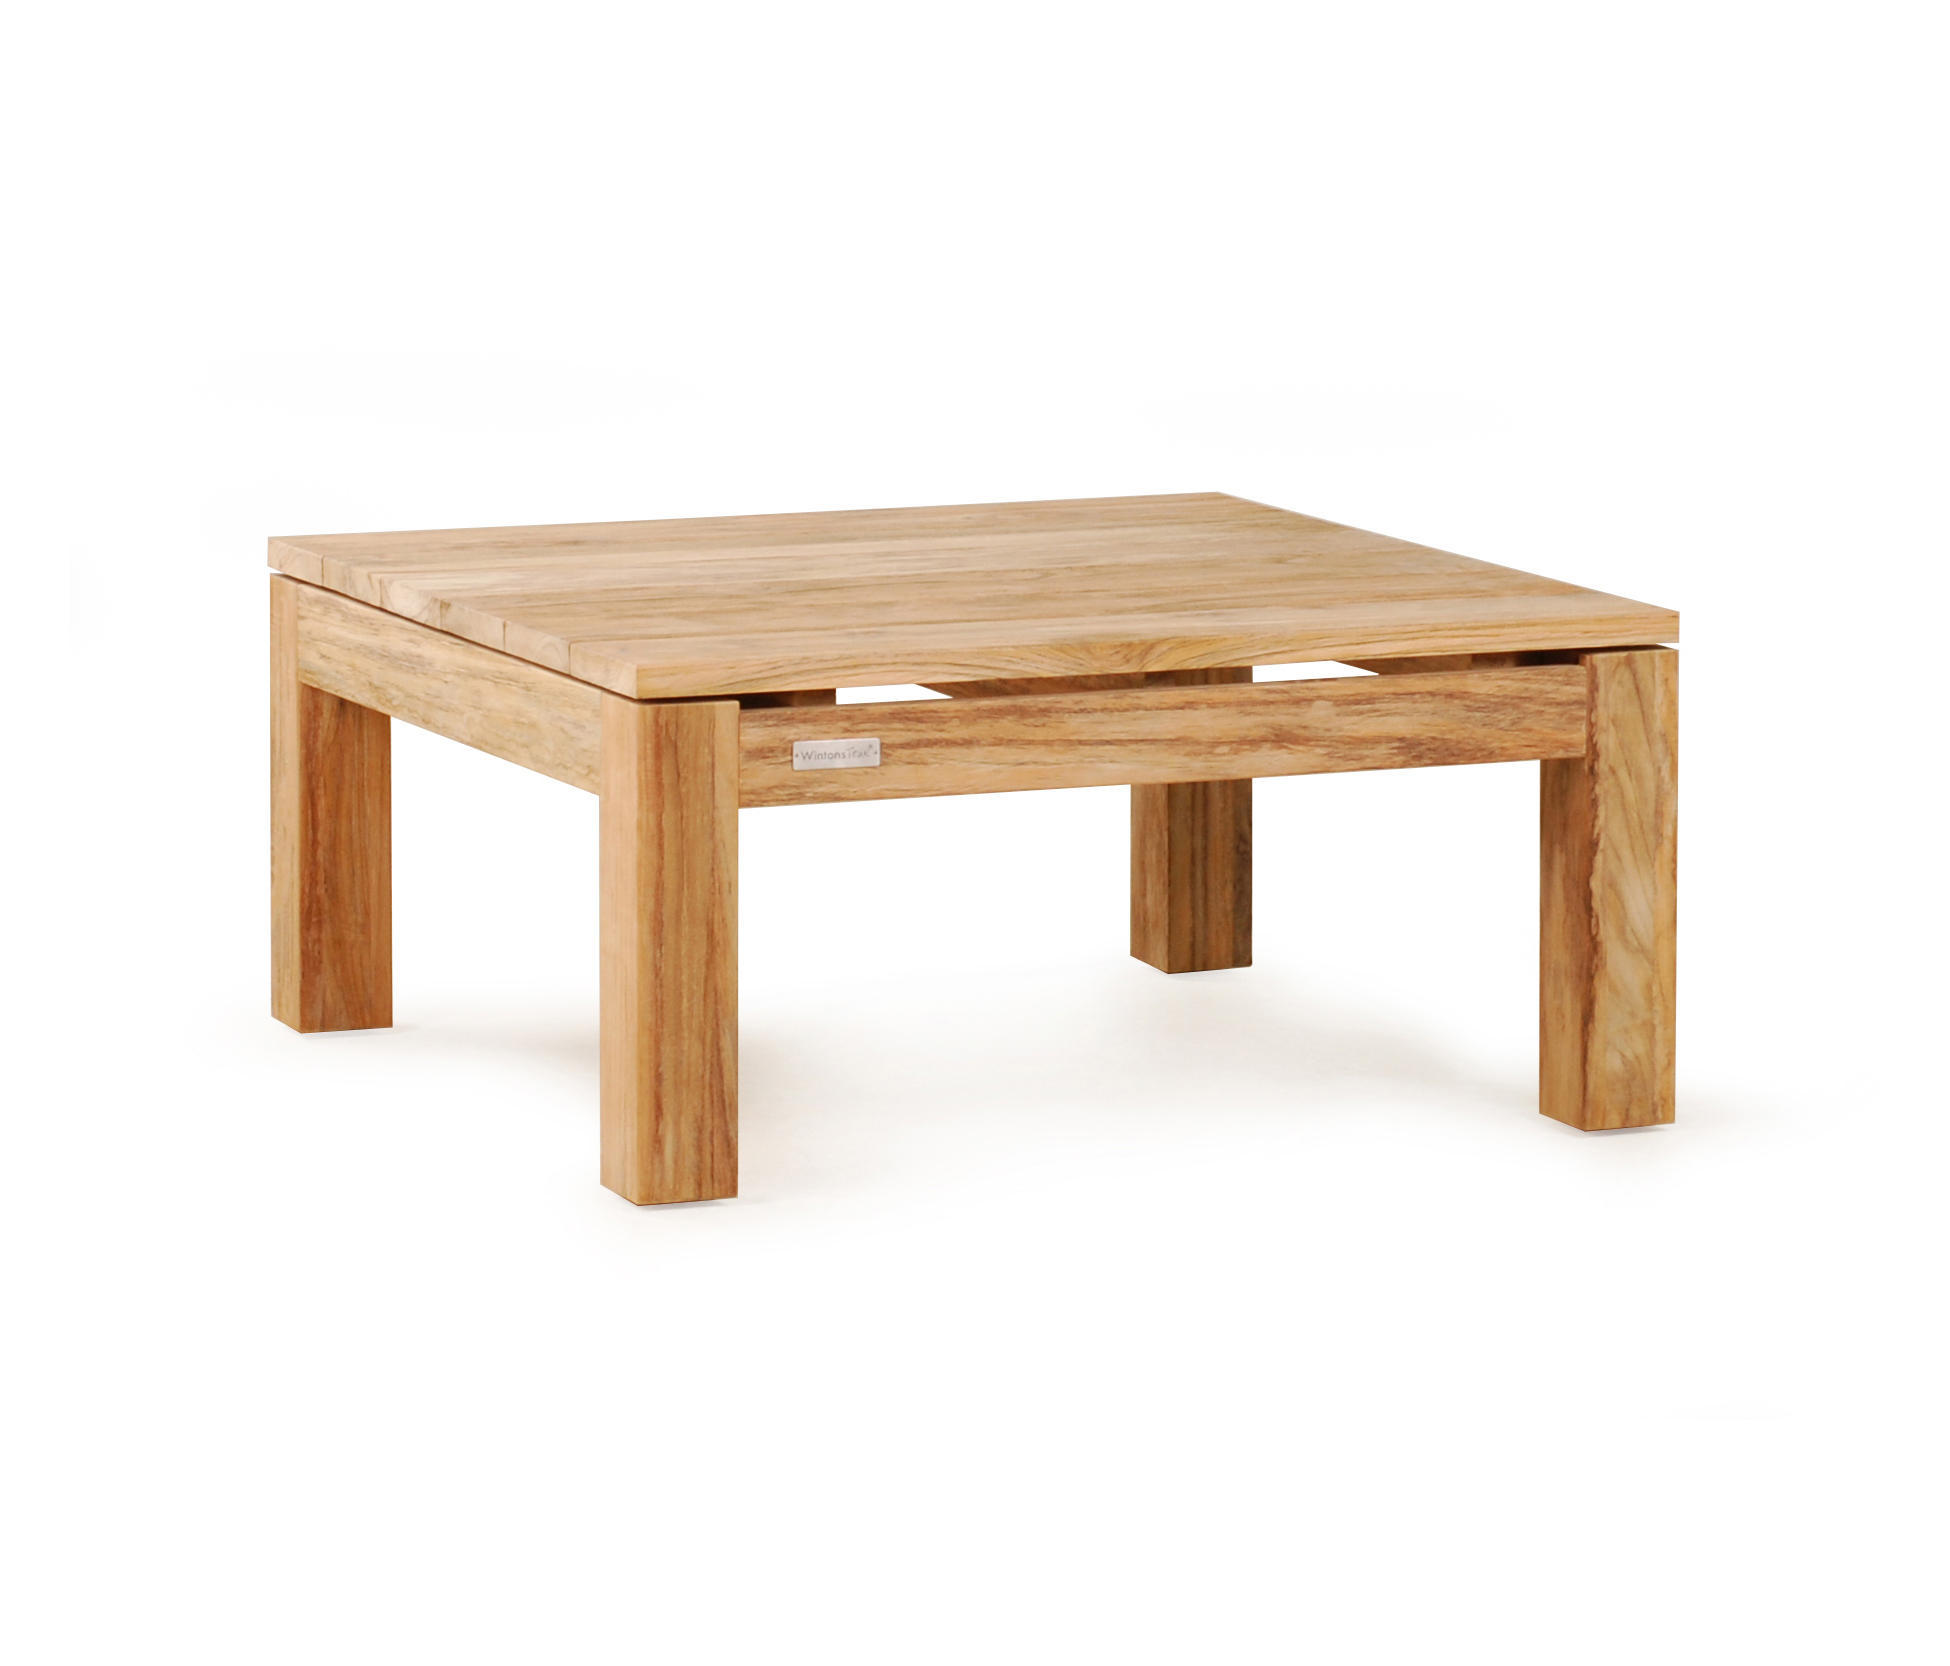 PIERSON COFFEE TABLE SQUARE Coffee tables from Wintons Teak